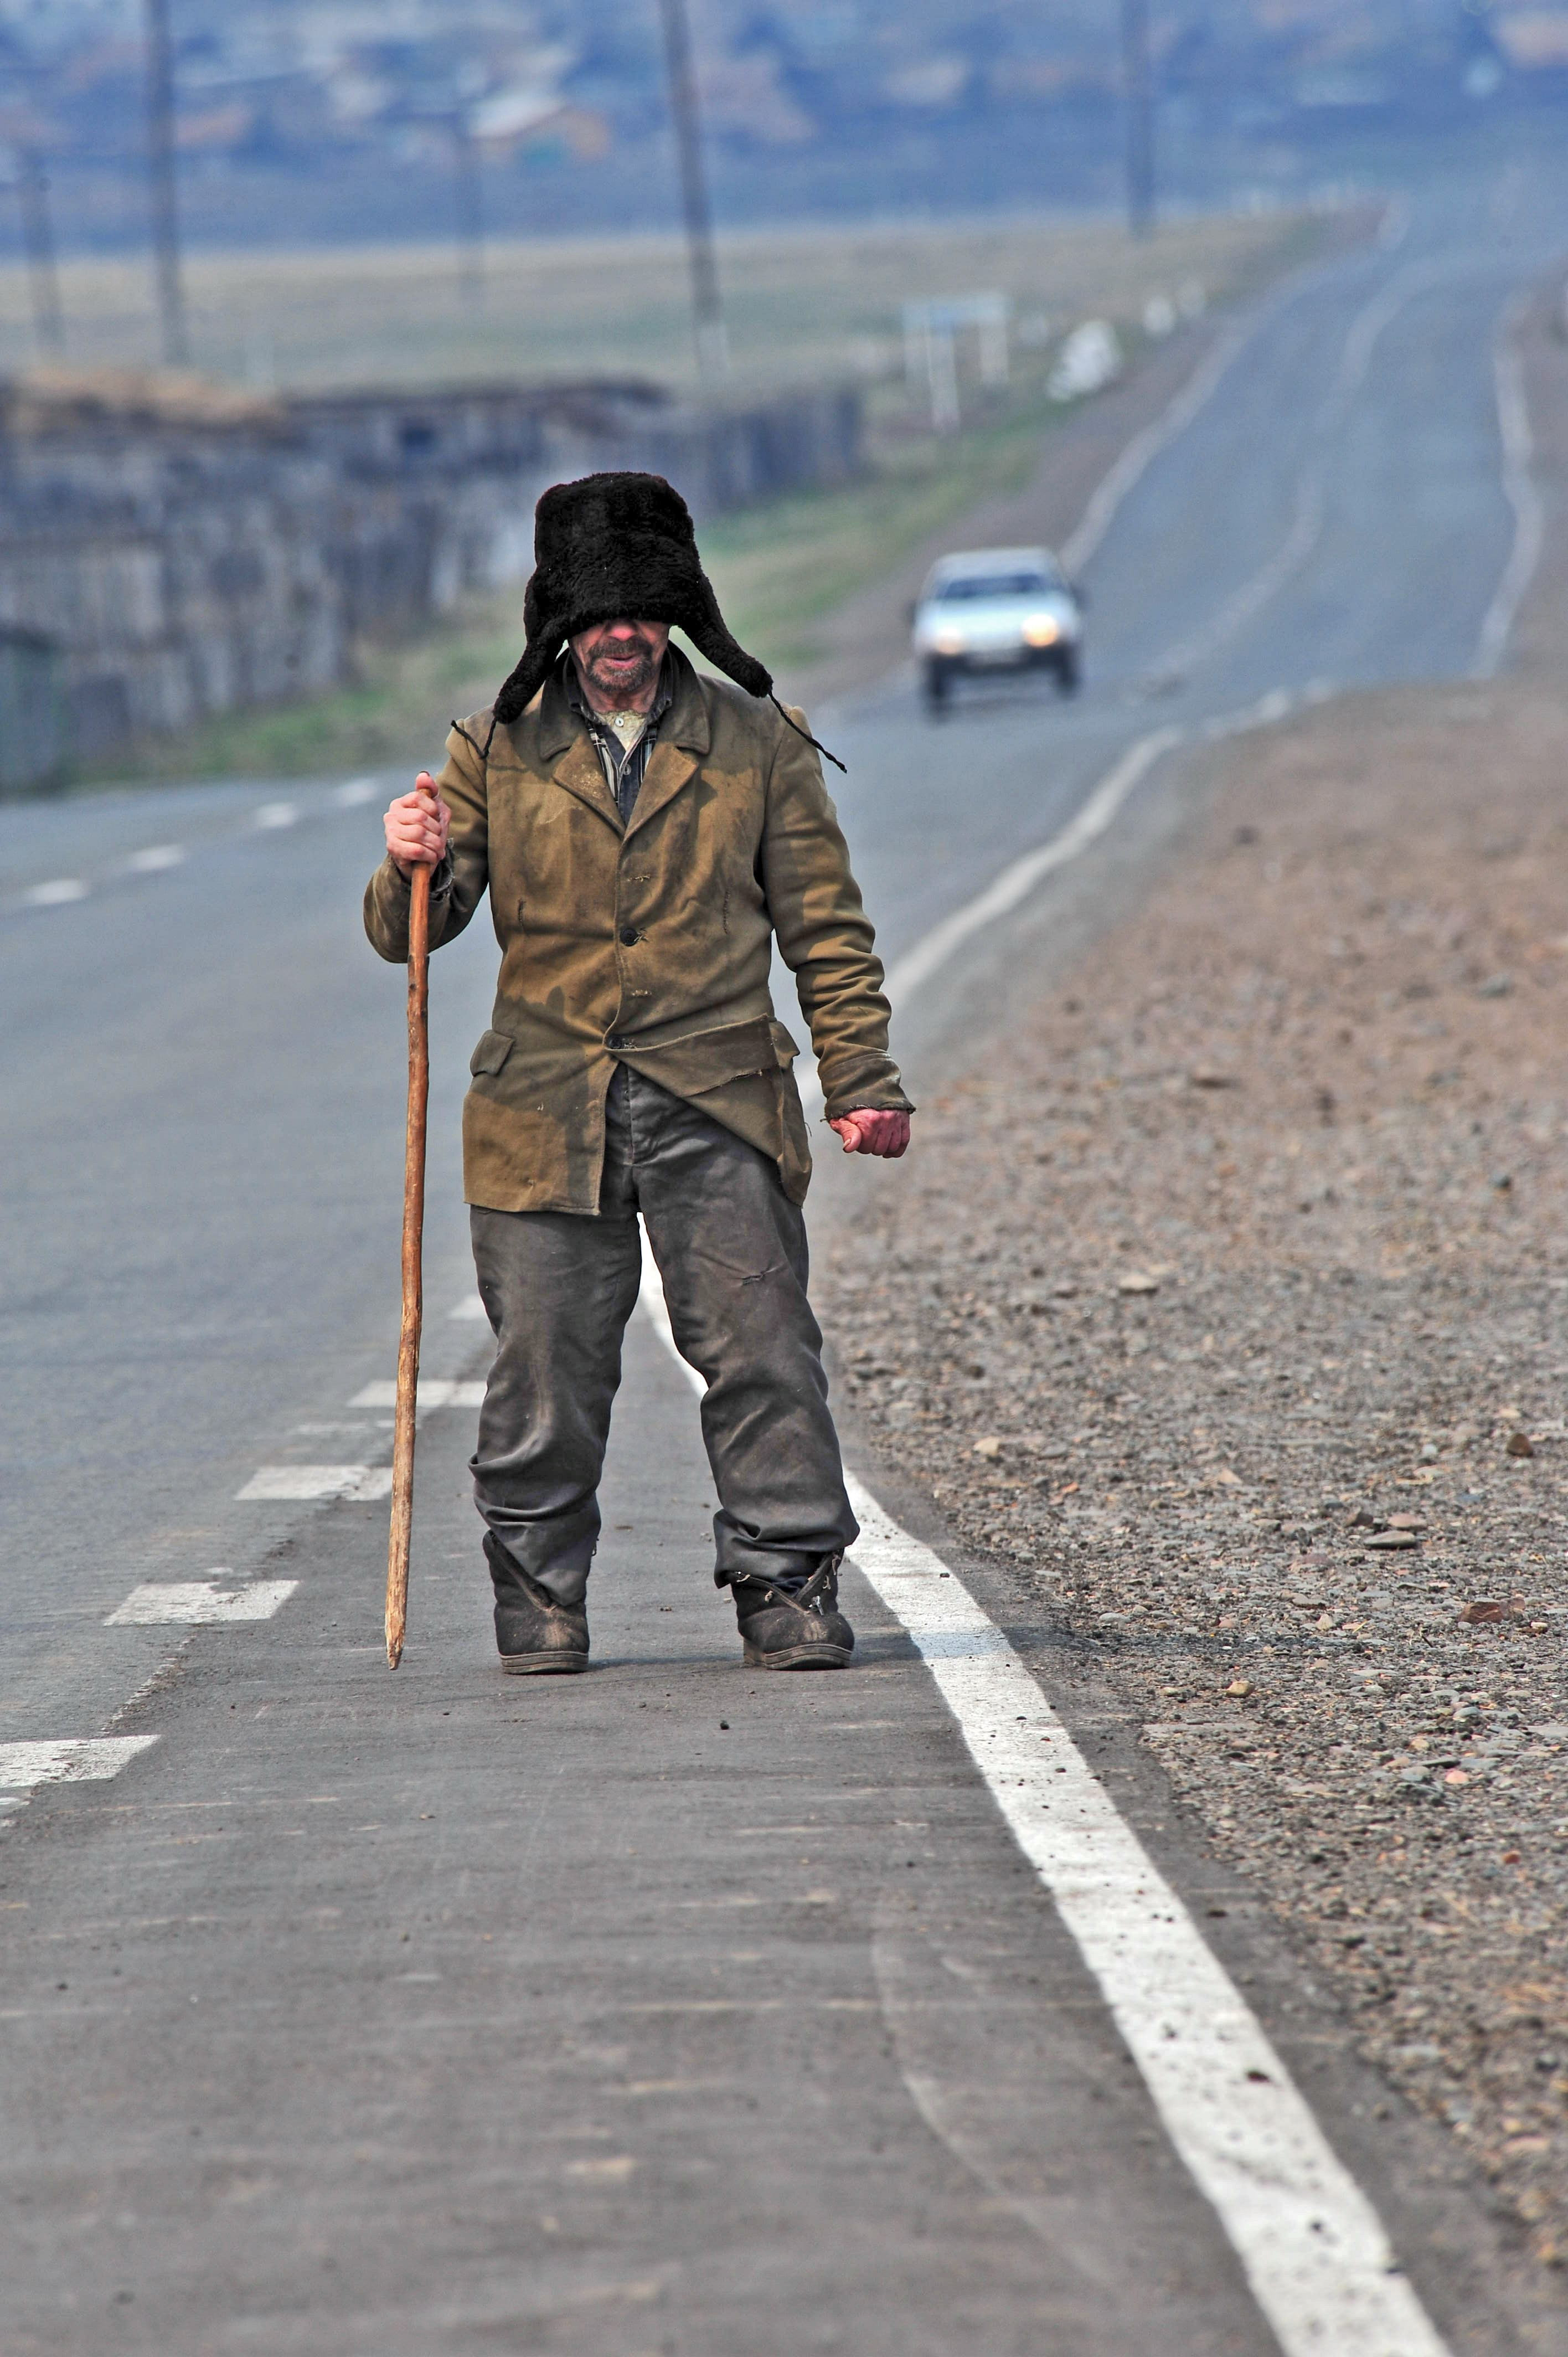 the blind person walking along a Siberian highway